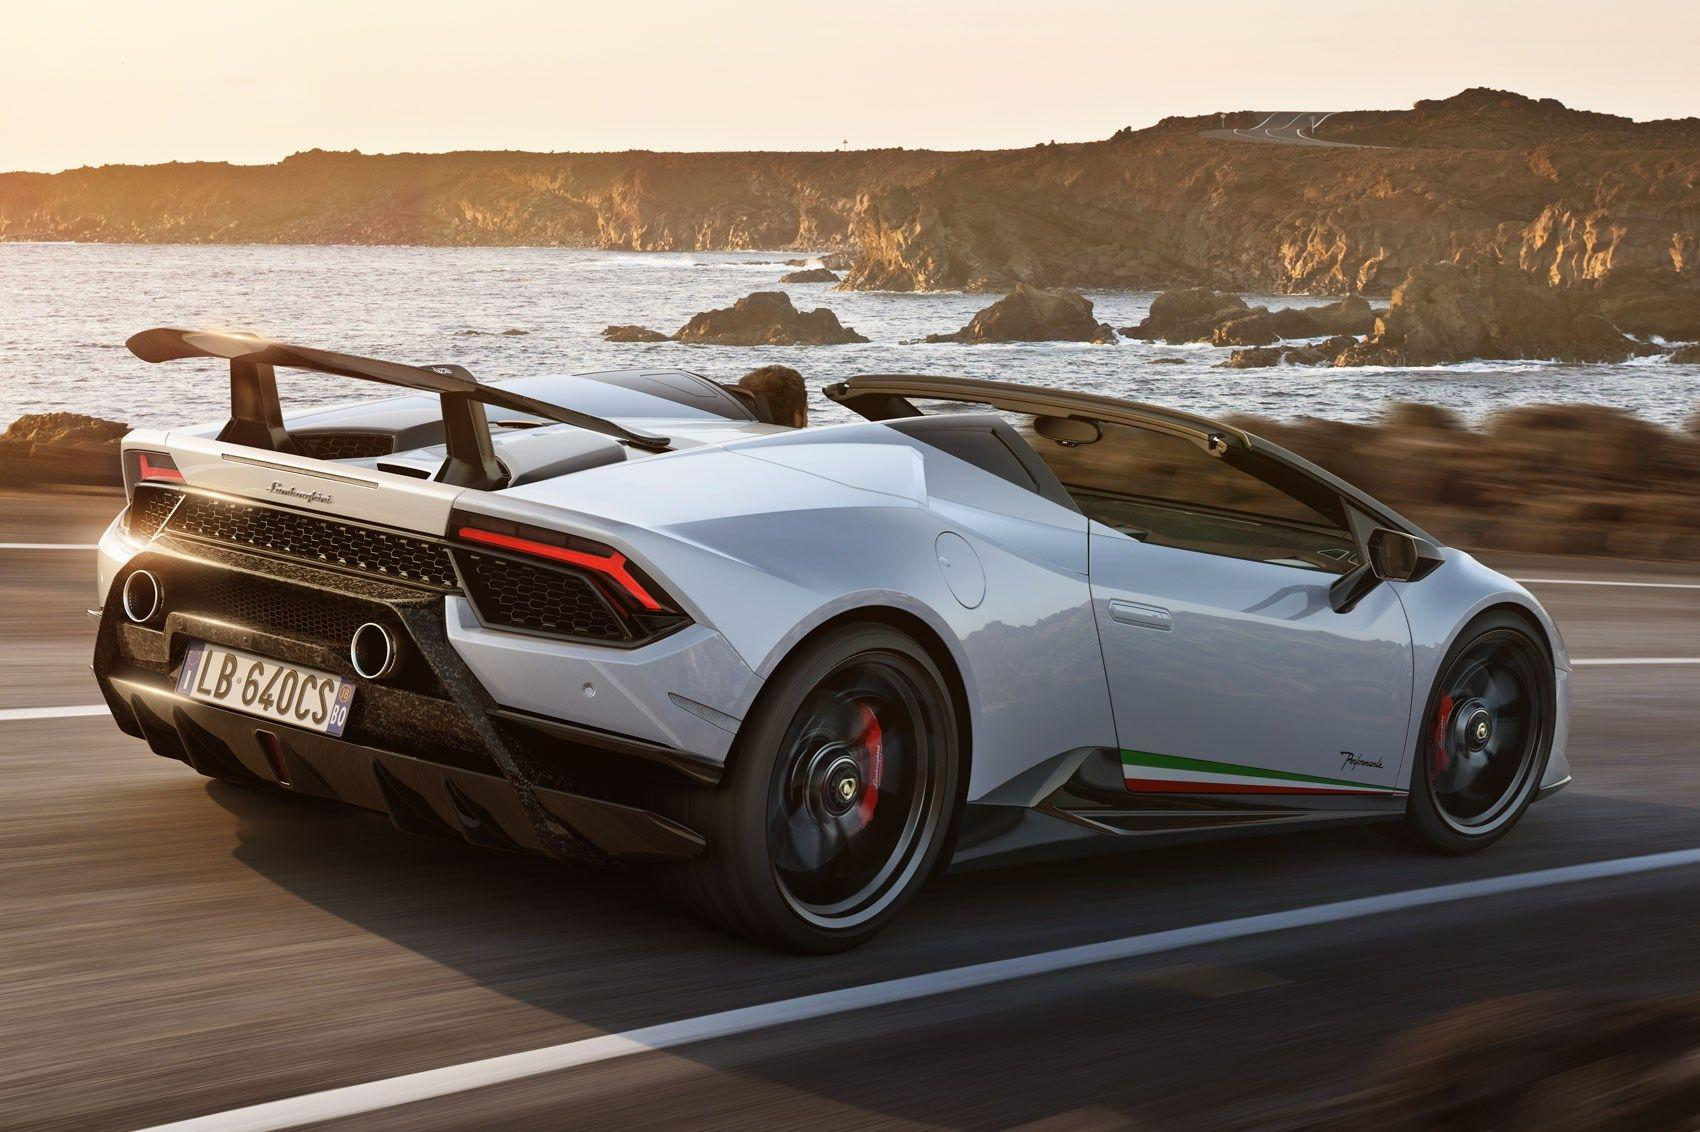 Lamborghini Huracan Performante Spyder: hardcore and topless thrills